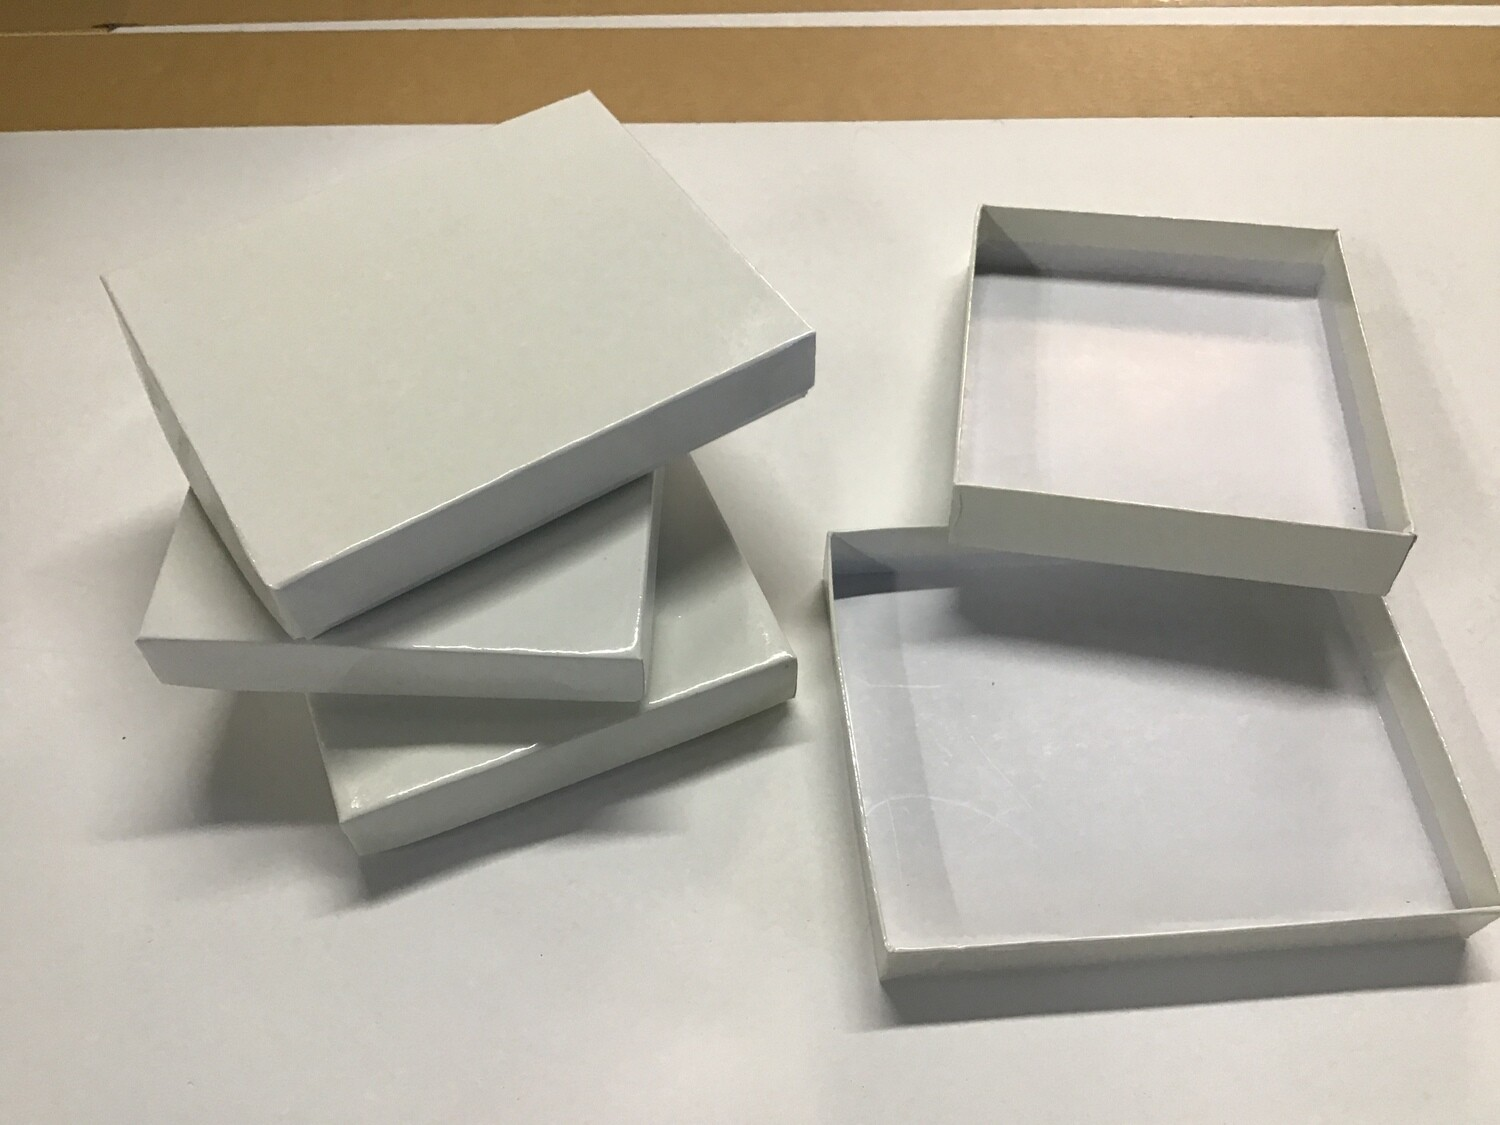 Small Gift Boxes, Off-white, Set of 4